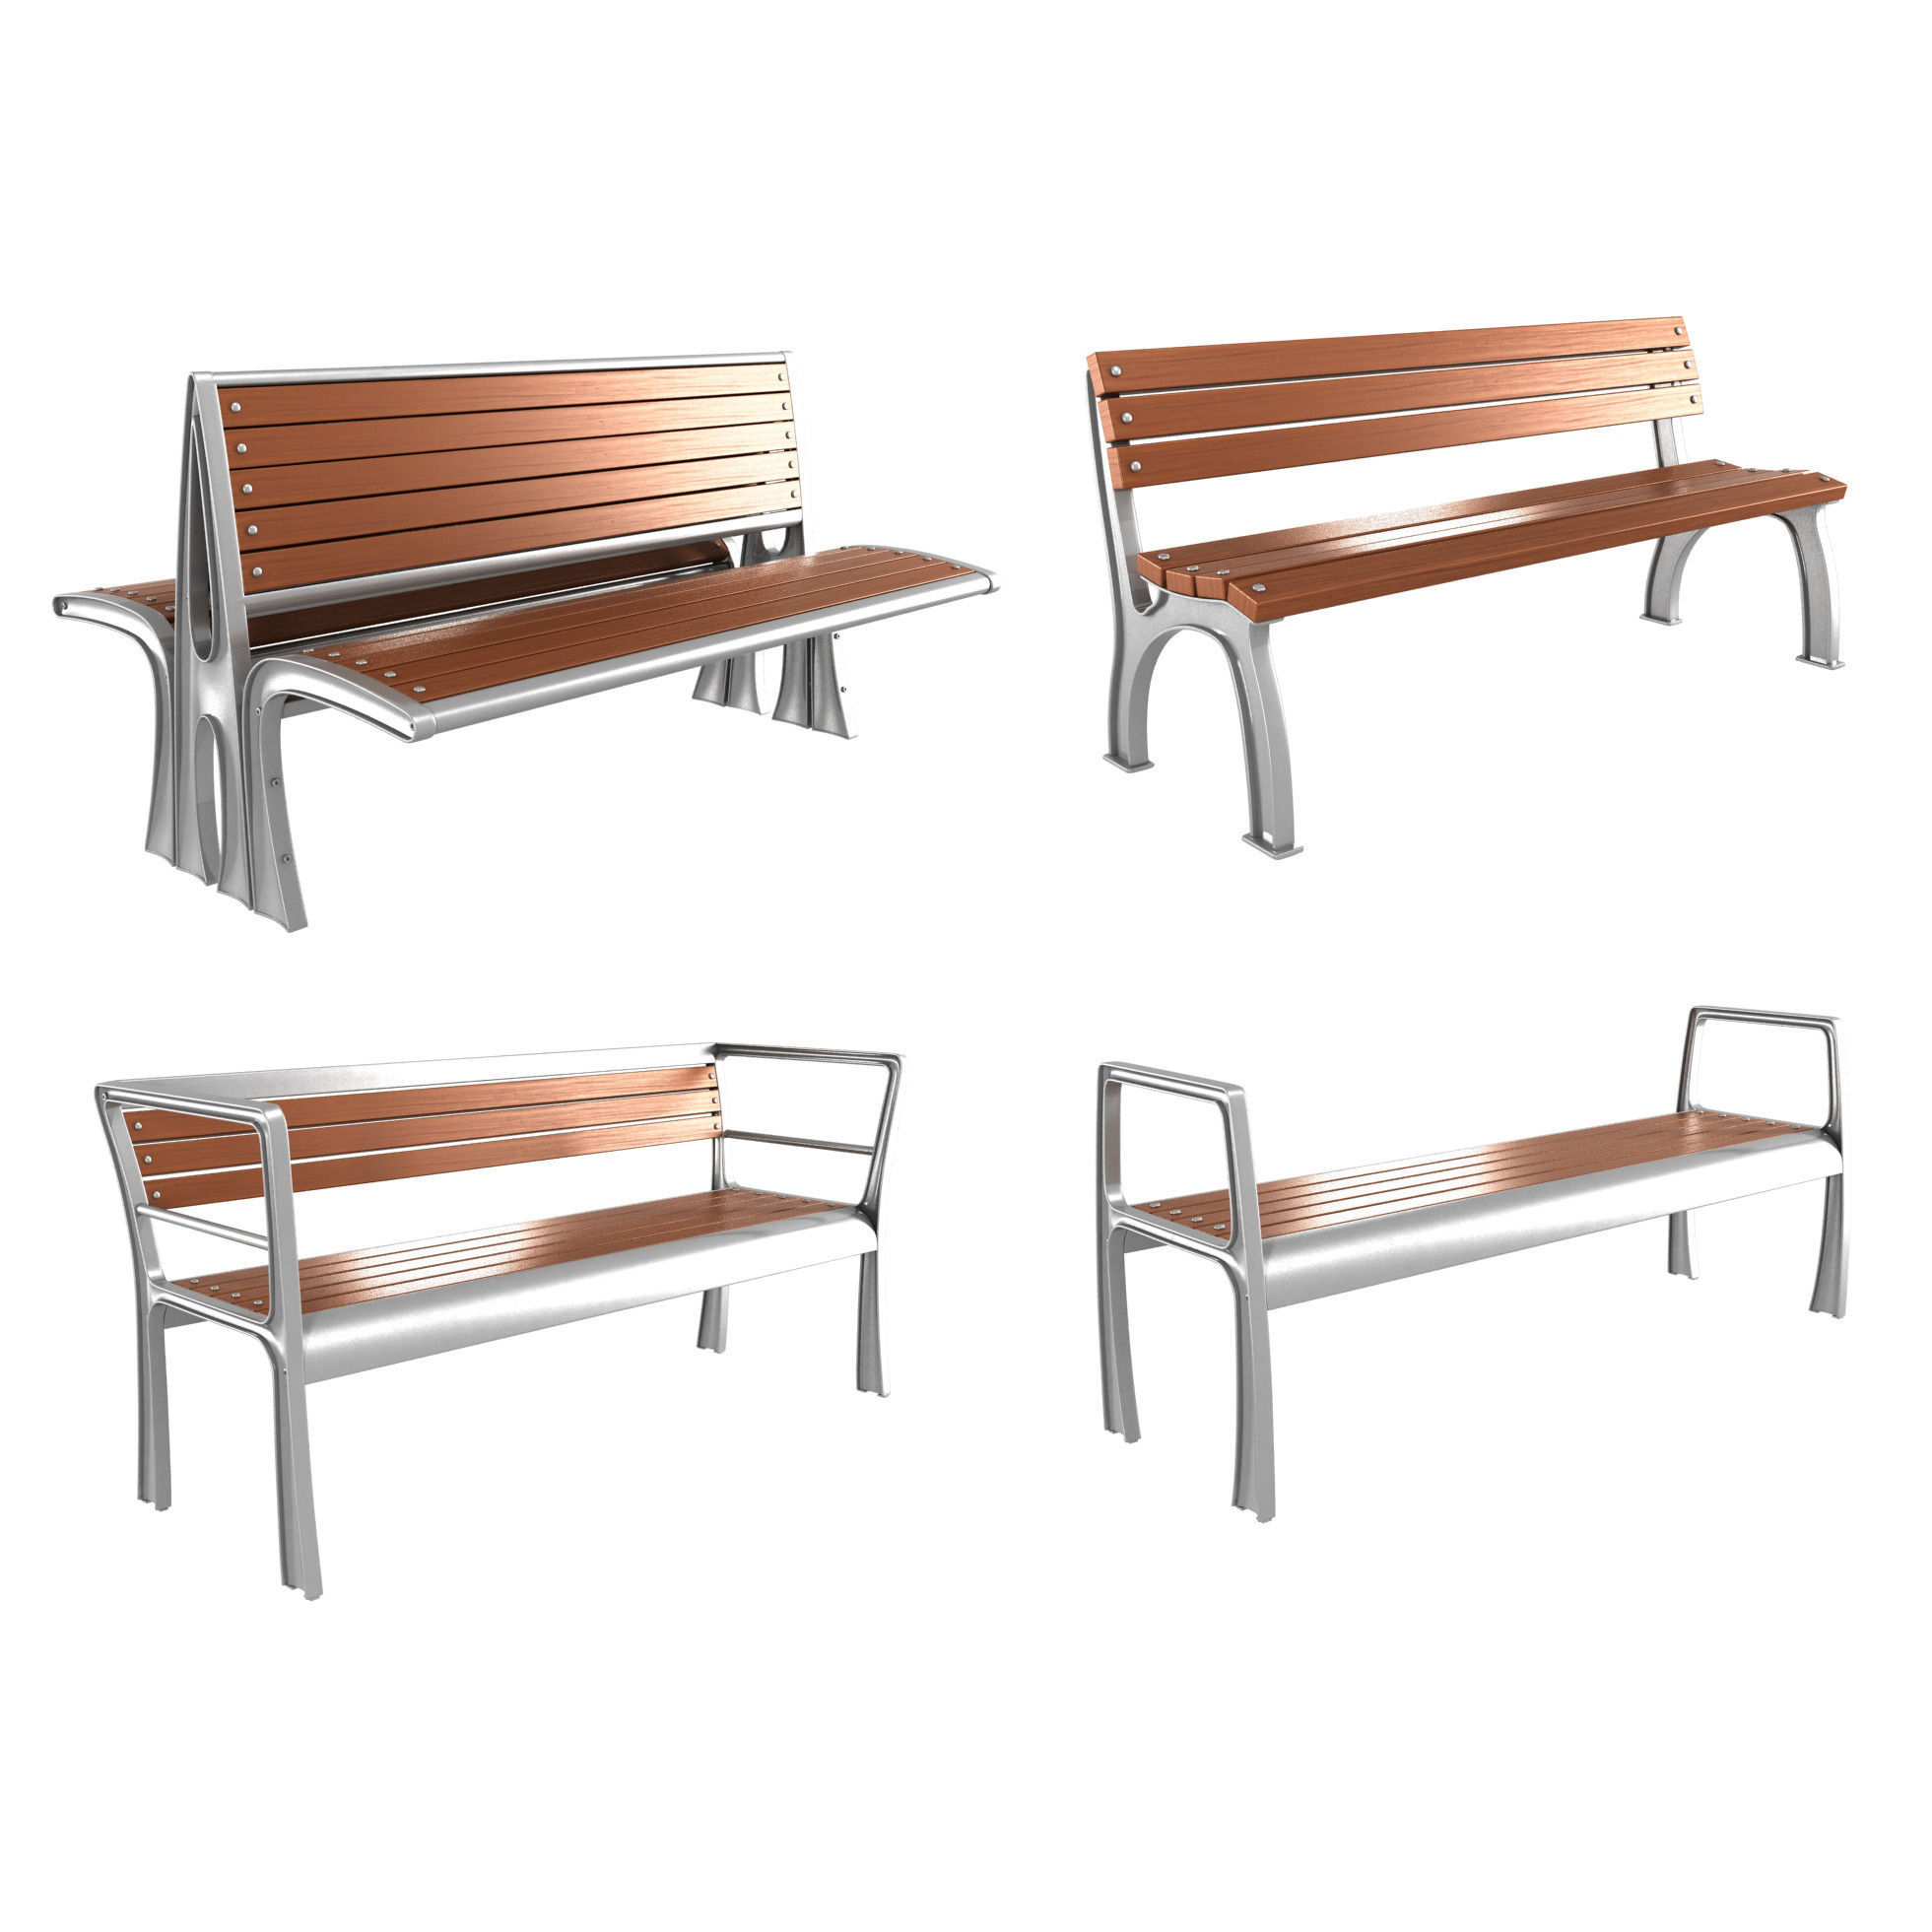 Modern Bench Collection 4